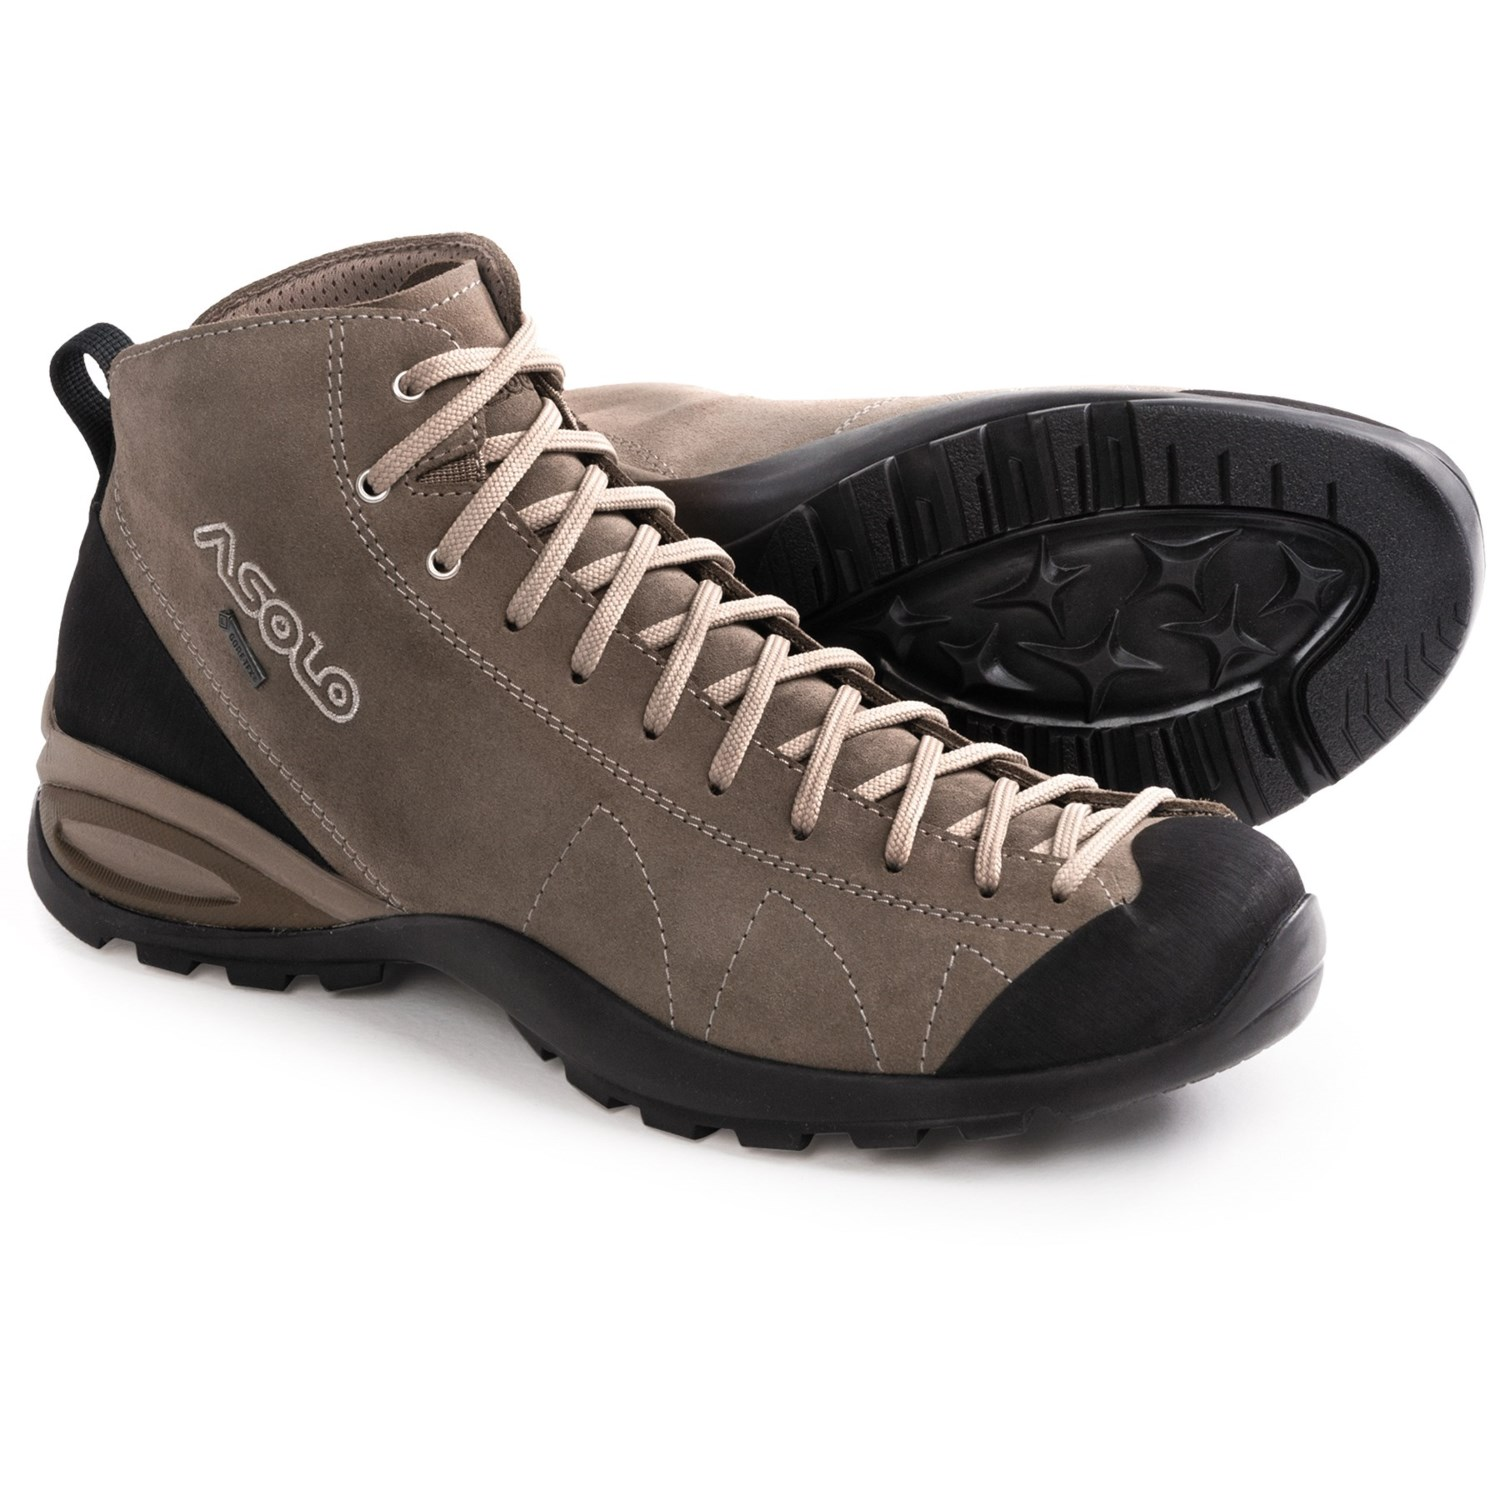 38775fdd311 Asolo Cactus Gore-Tex® Suede Hiking Boots - Waterproof (For Men)